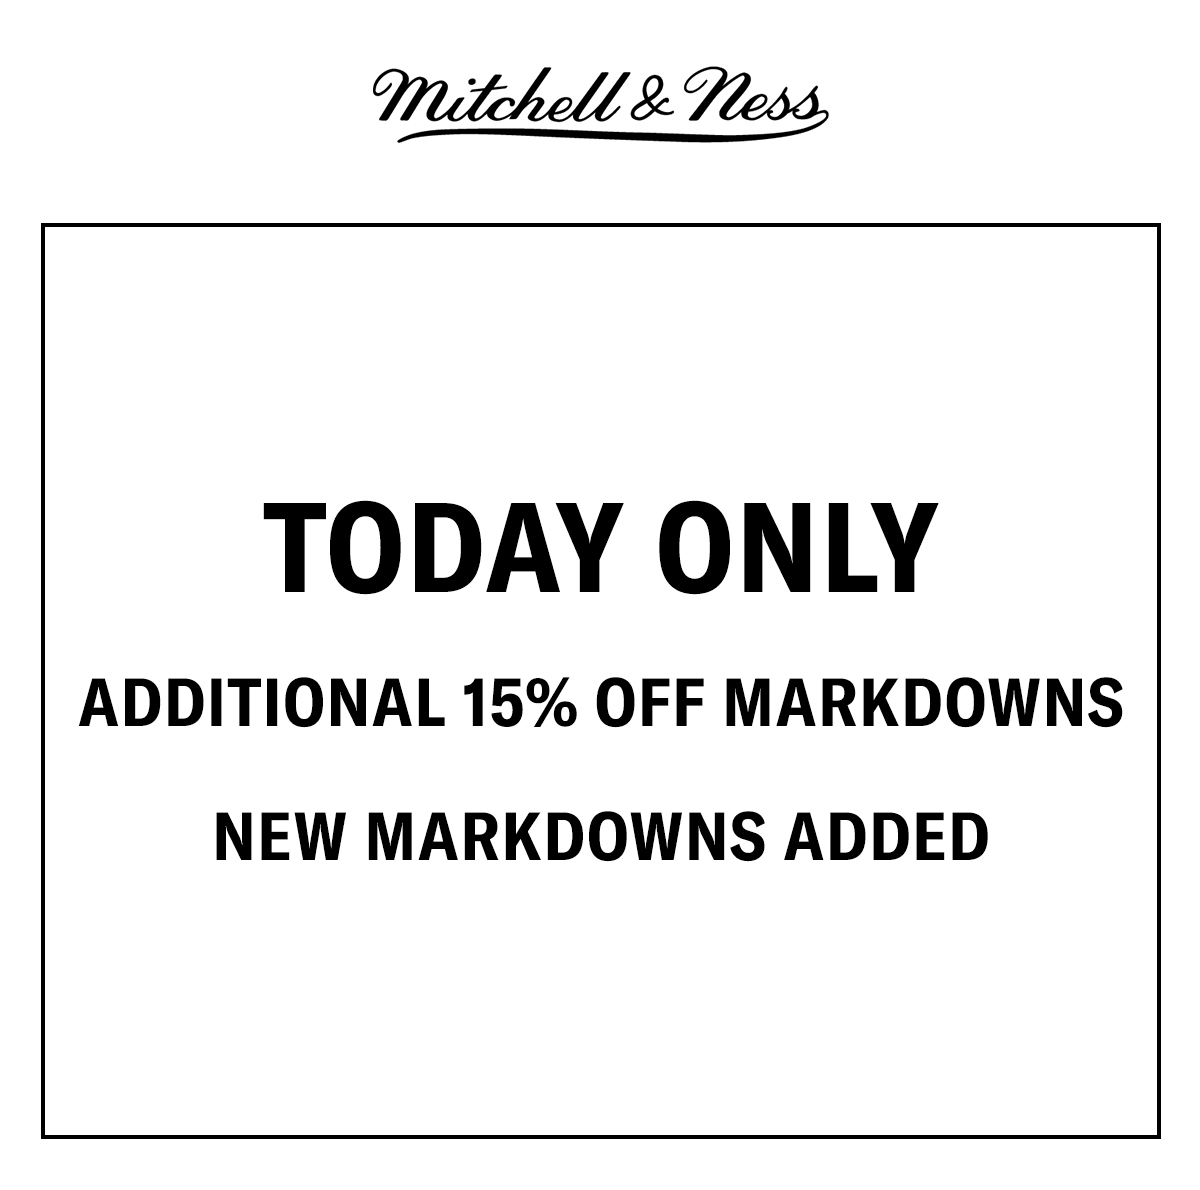 Today Only - Additional 15% Off Markdowns - New Markdowns Added